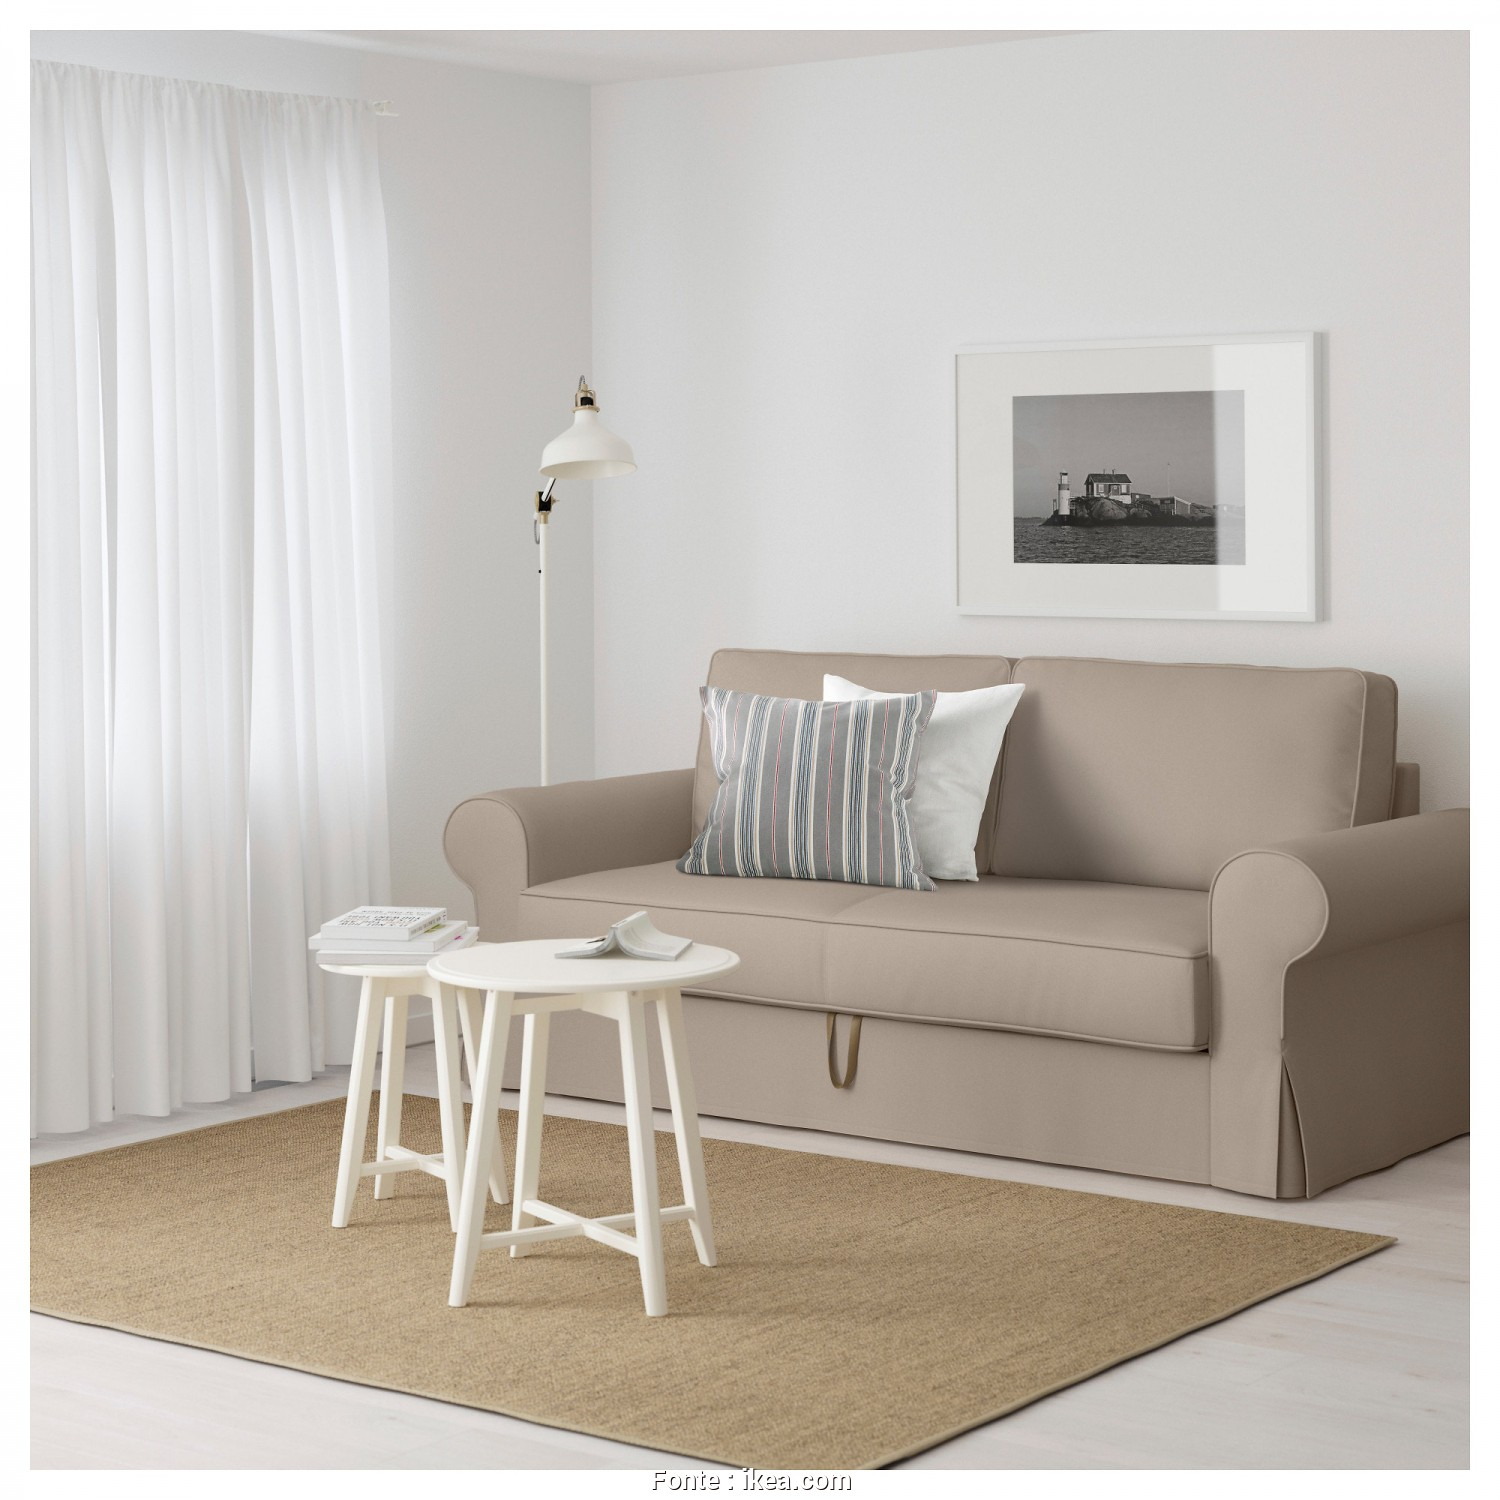 Laver Housse Canapé Ikea Backabro, Bellissima BACKABRO Convertible 3 Places Tygelsjö Beige